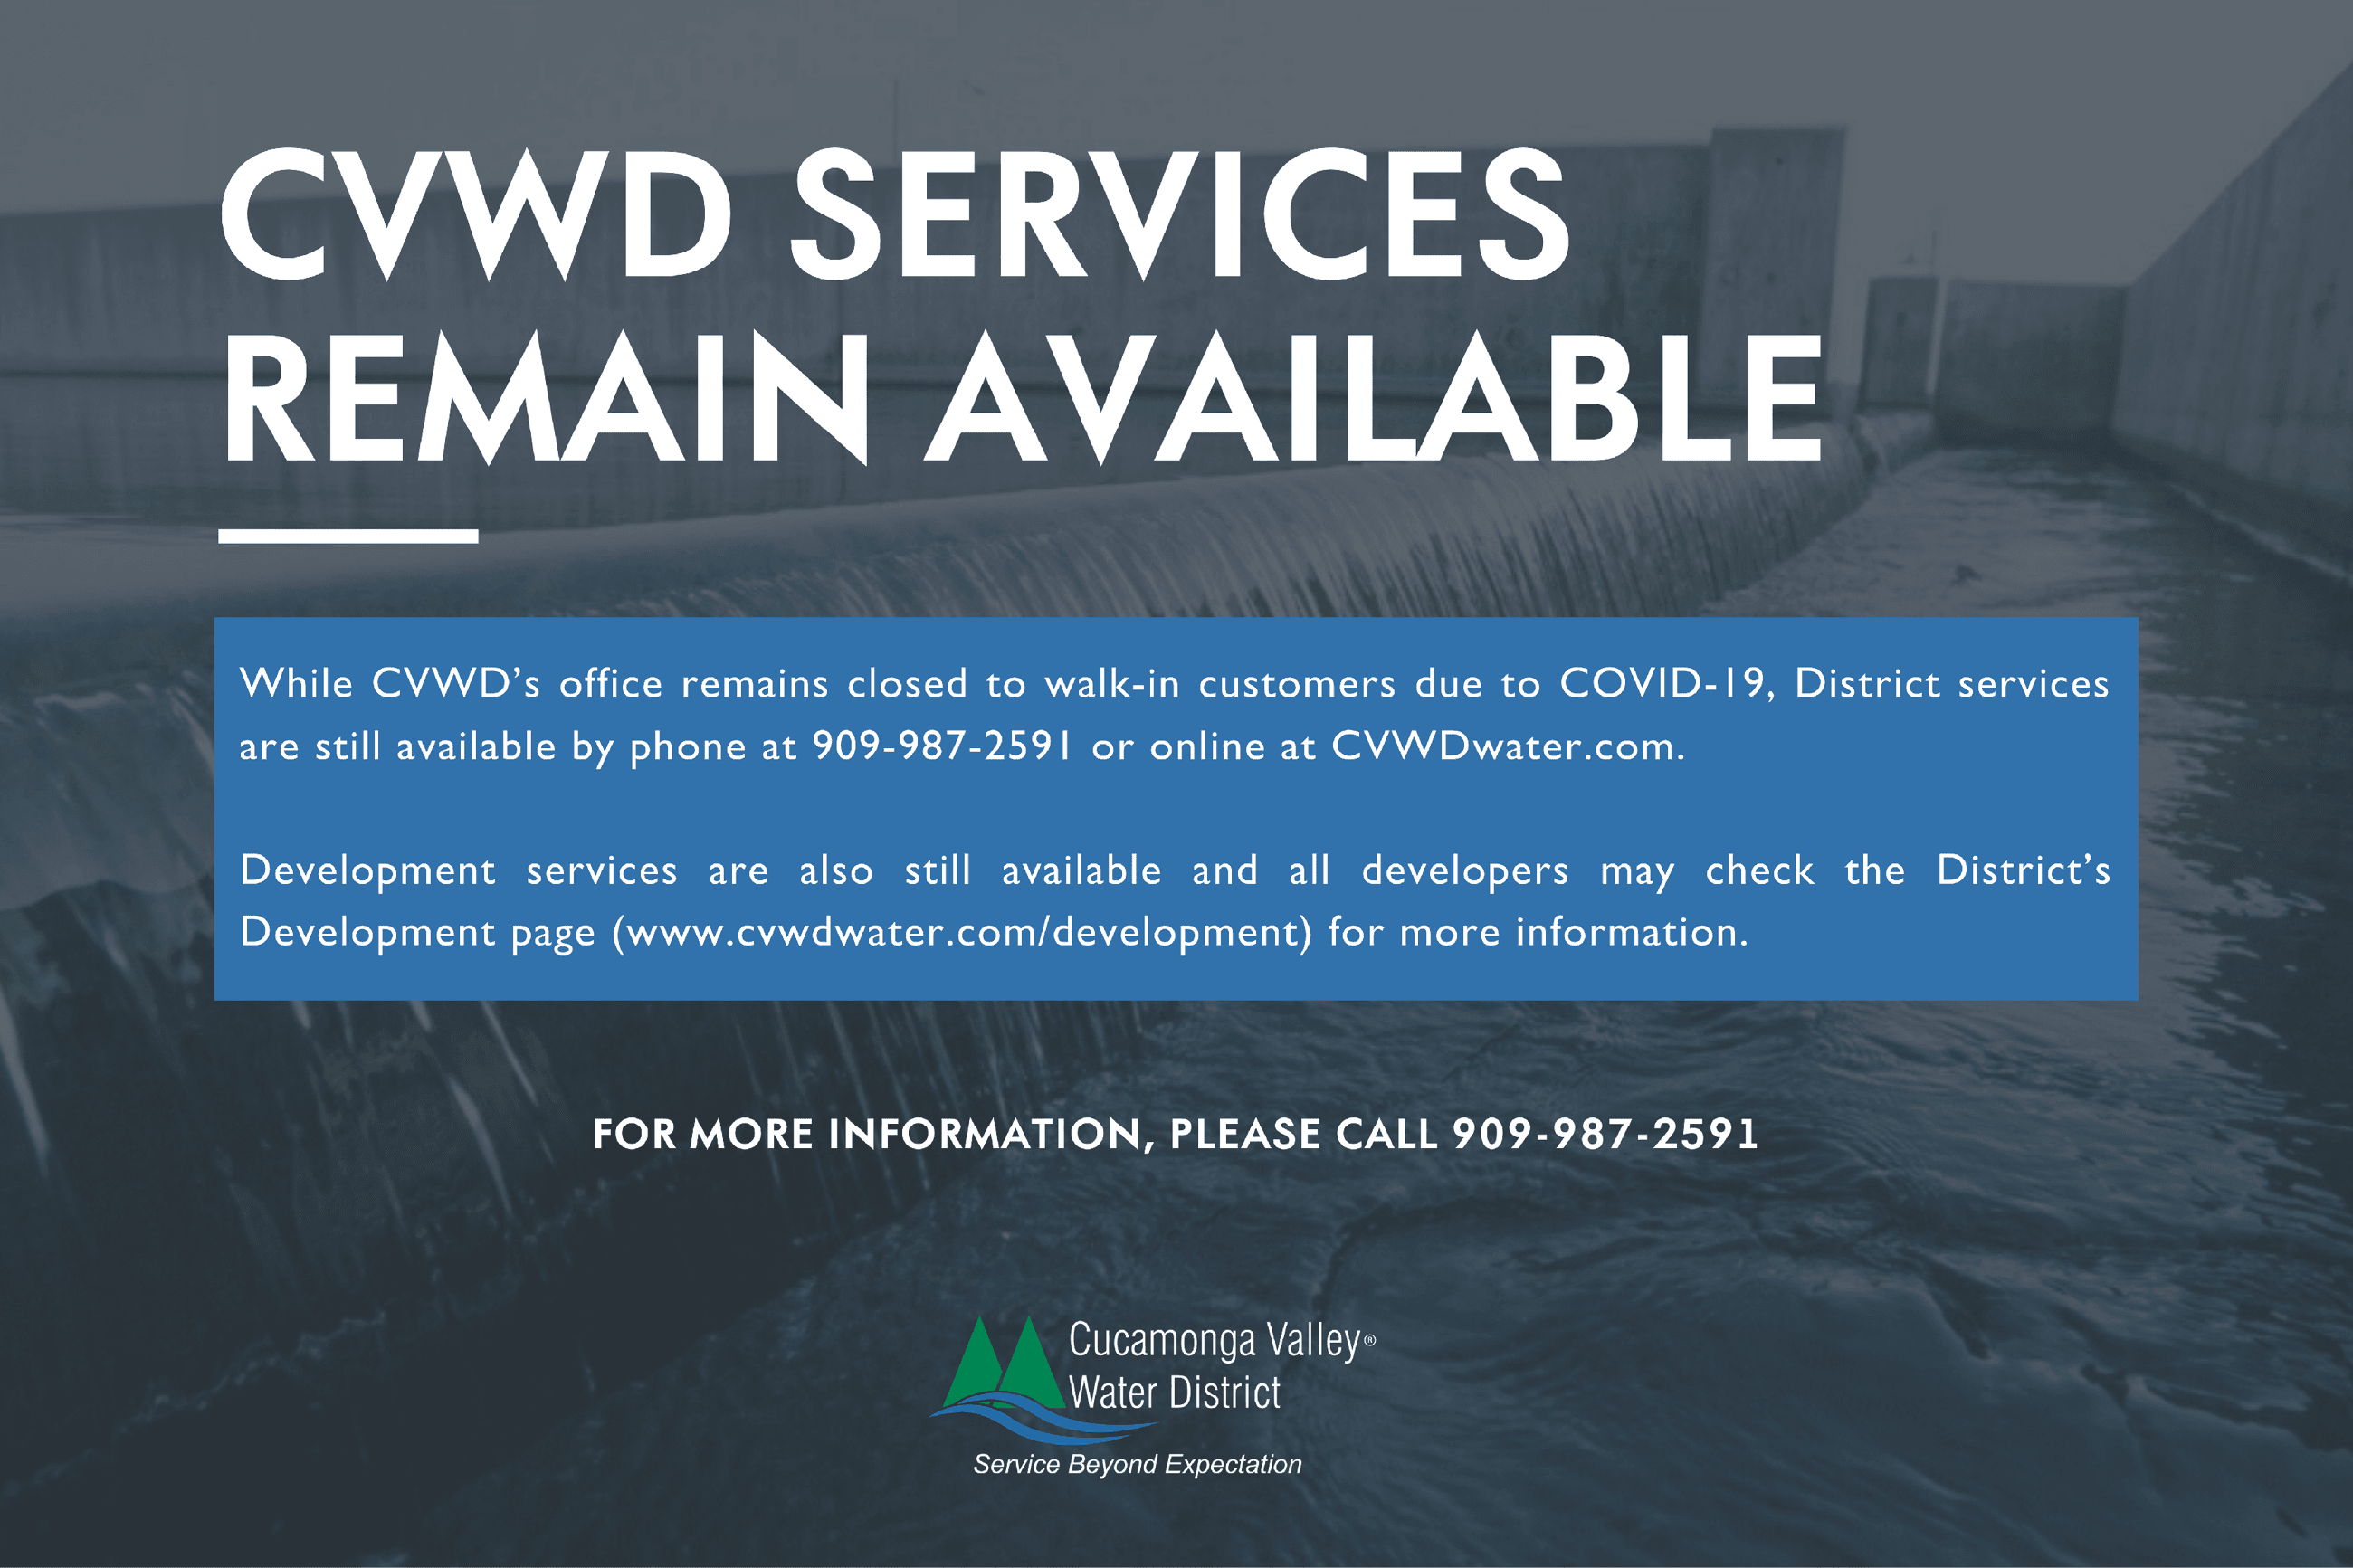 CVWD Services Remain Available